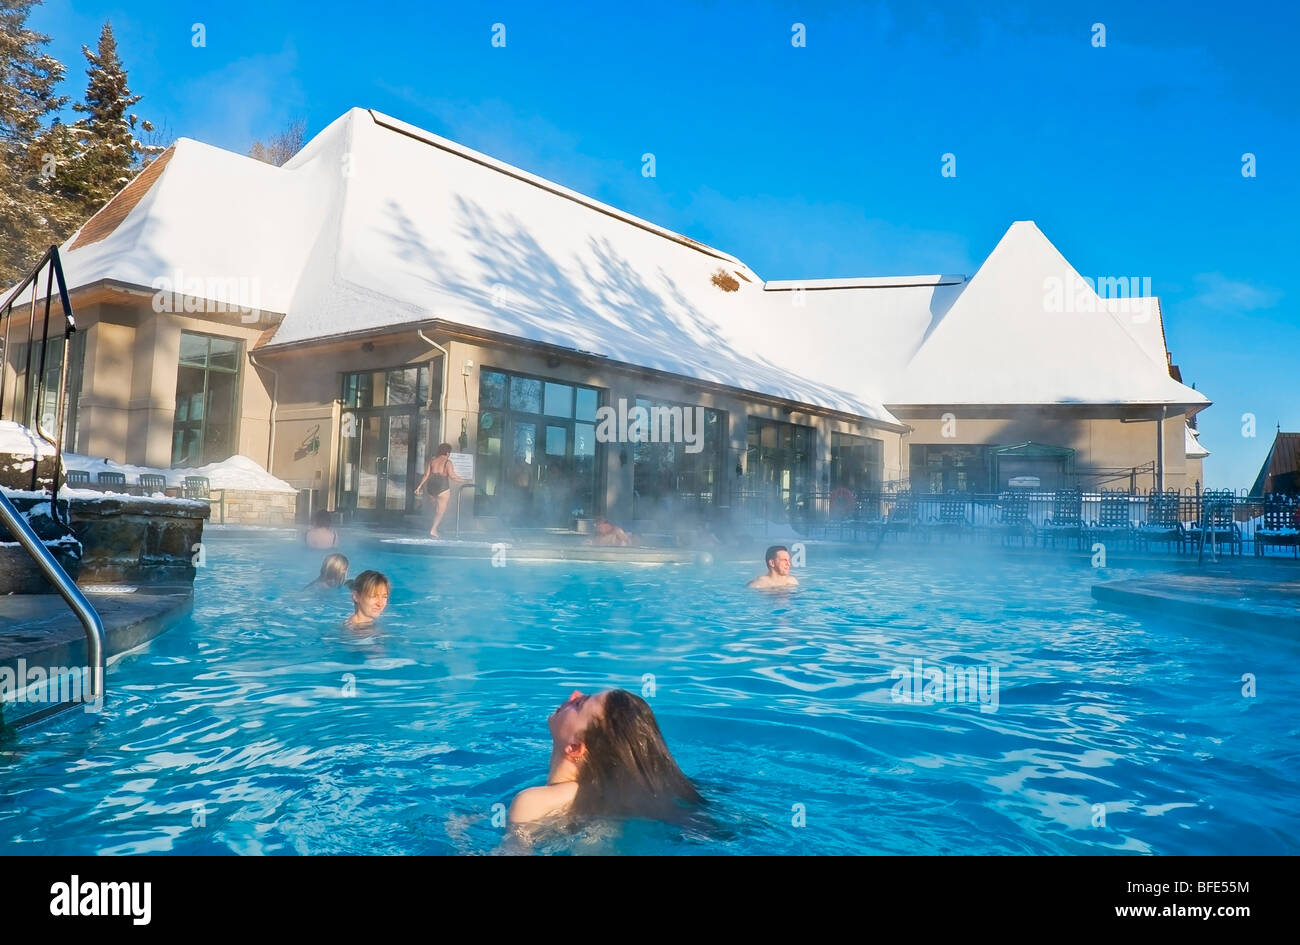 Hotel pool with people  People bathing in a heated swimming pool in winter at Fairmont ...